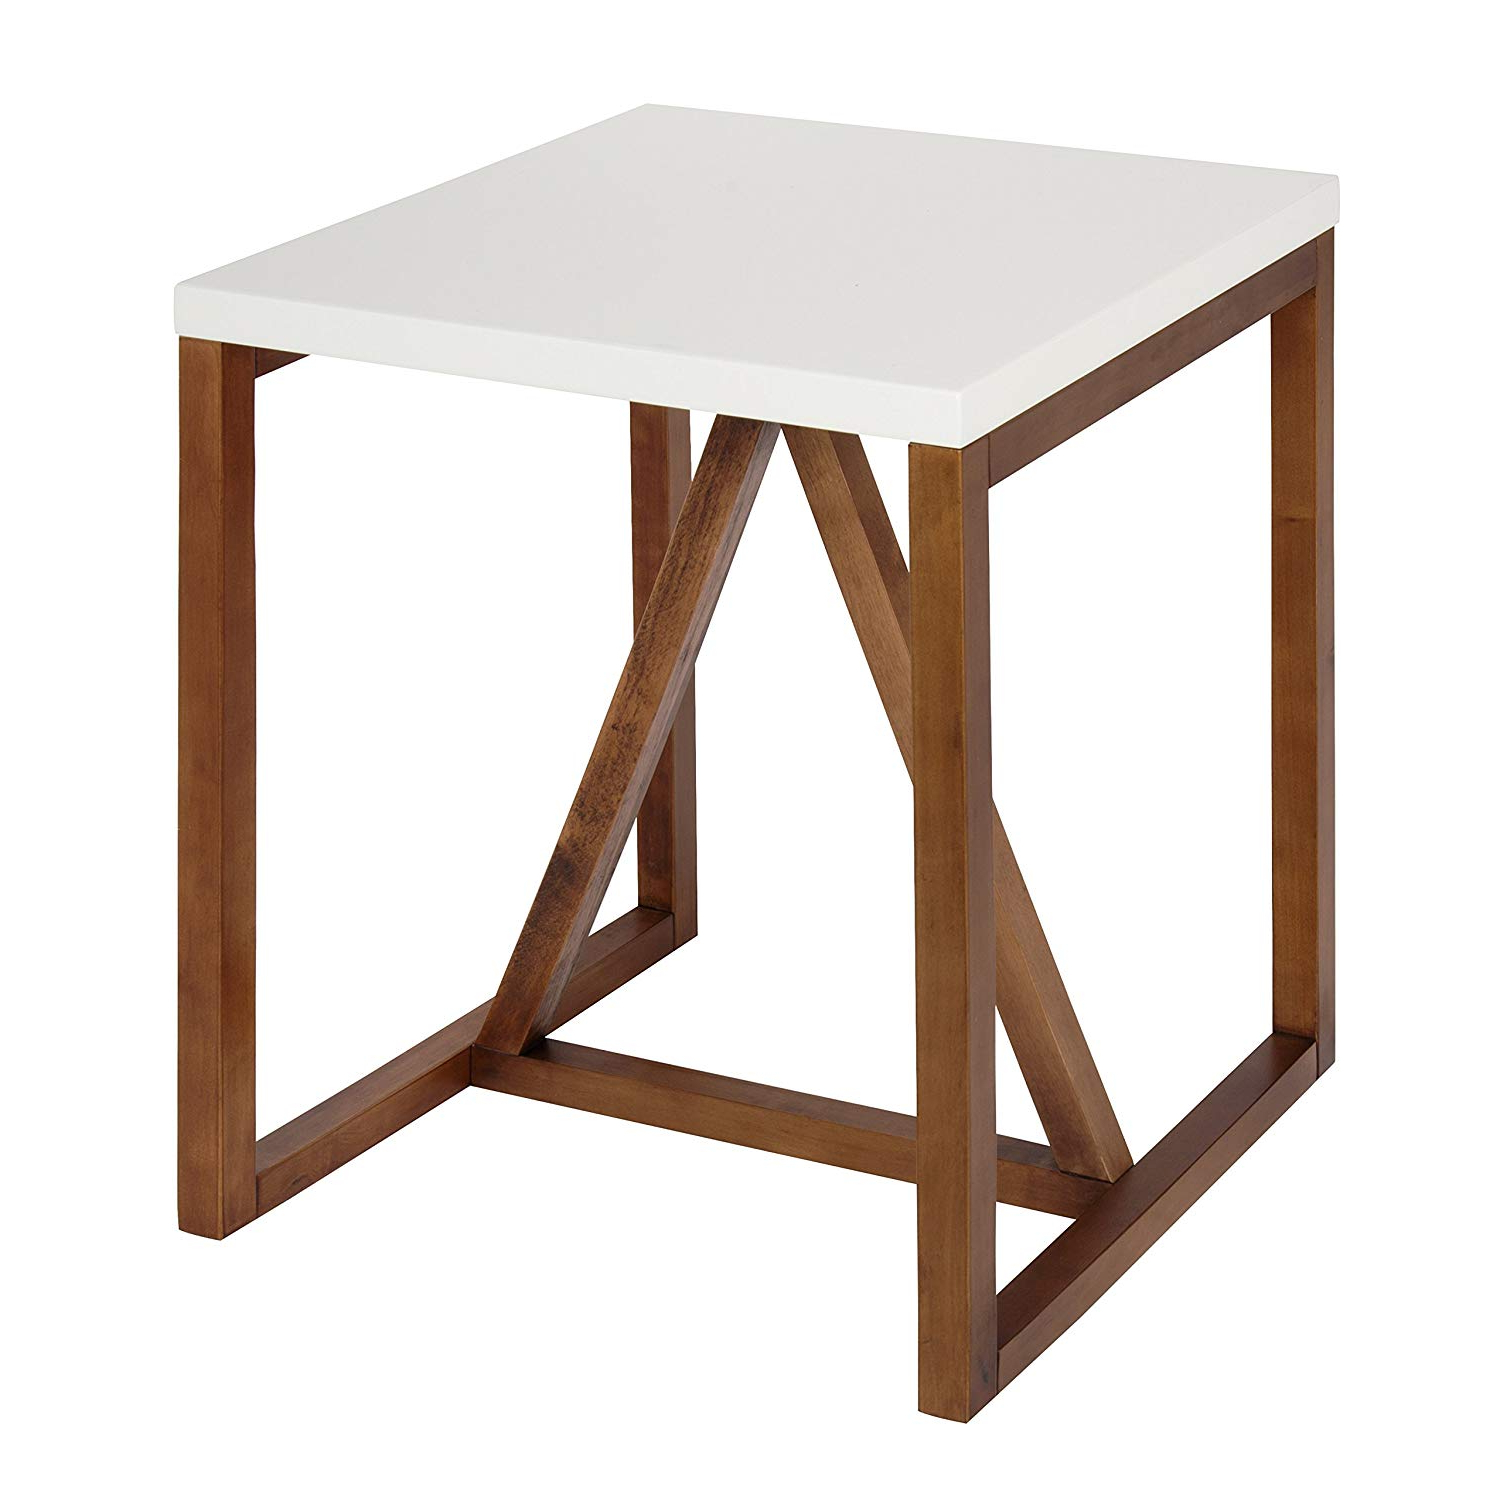 2018 Kate And Laurel Kaya Square Wood Side Table, White Top With Walnut Brown  Base Inside Kaya 3 Piece Dining Sets (View 3 of 20)